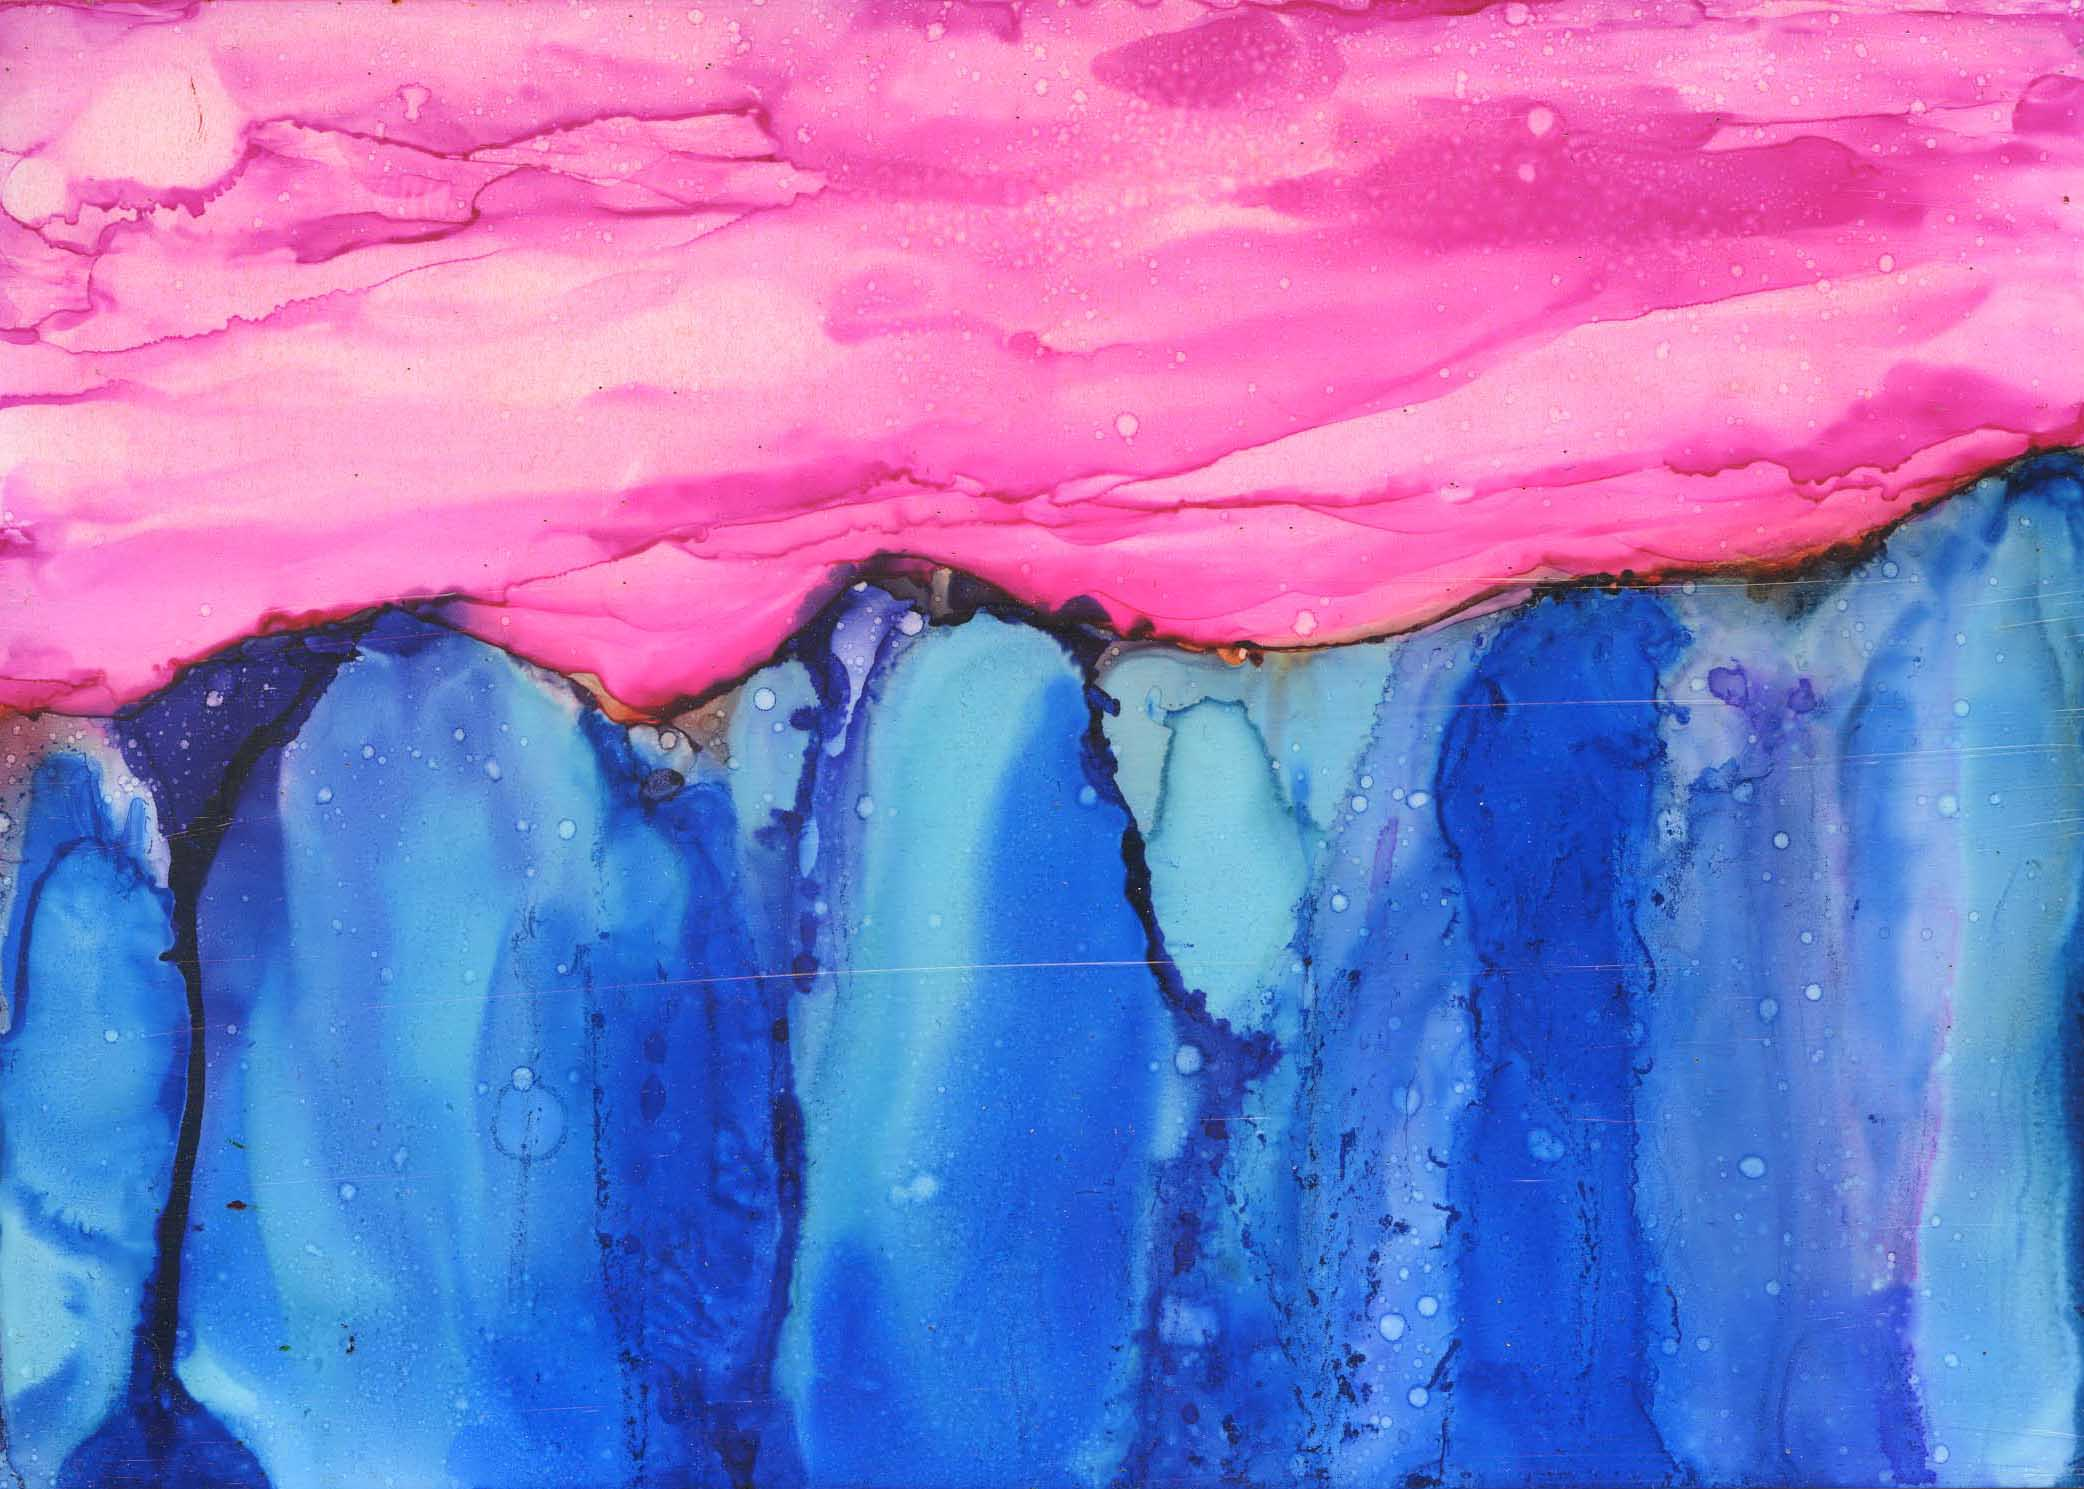 Pink Mountain Skies - Alcohol Ink - 5 X 7 - Sold - Print Available